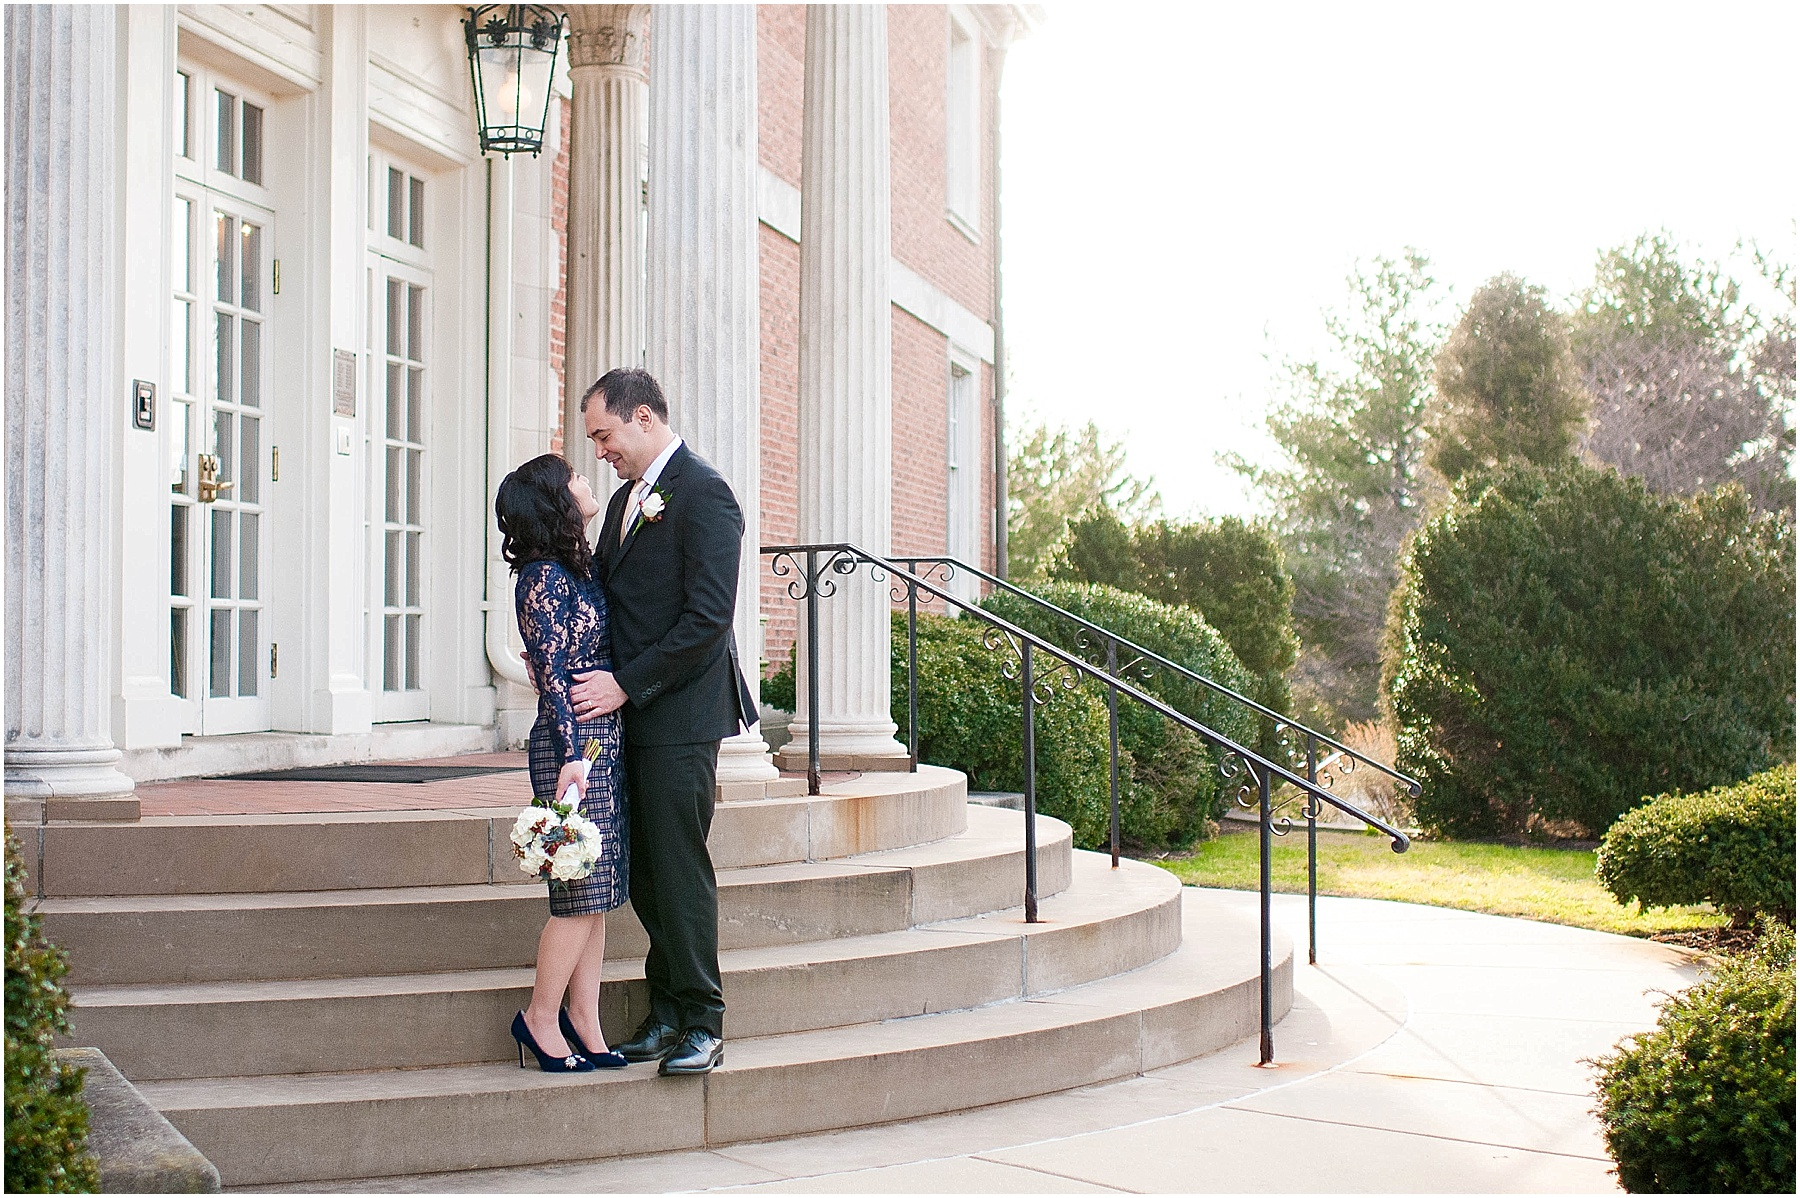 Small intimate wedding at Mansion at Strathmore - Ana Isabel Photography 45